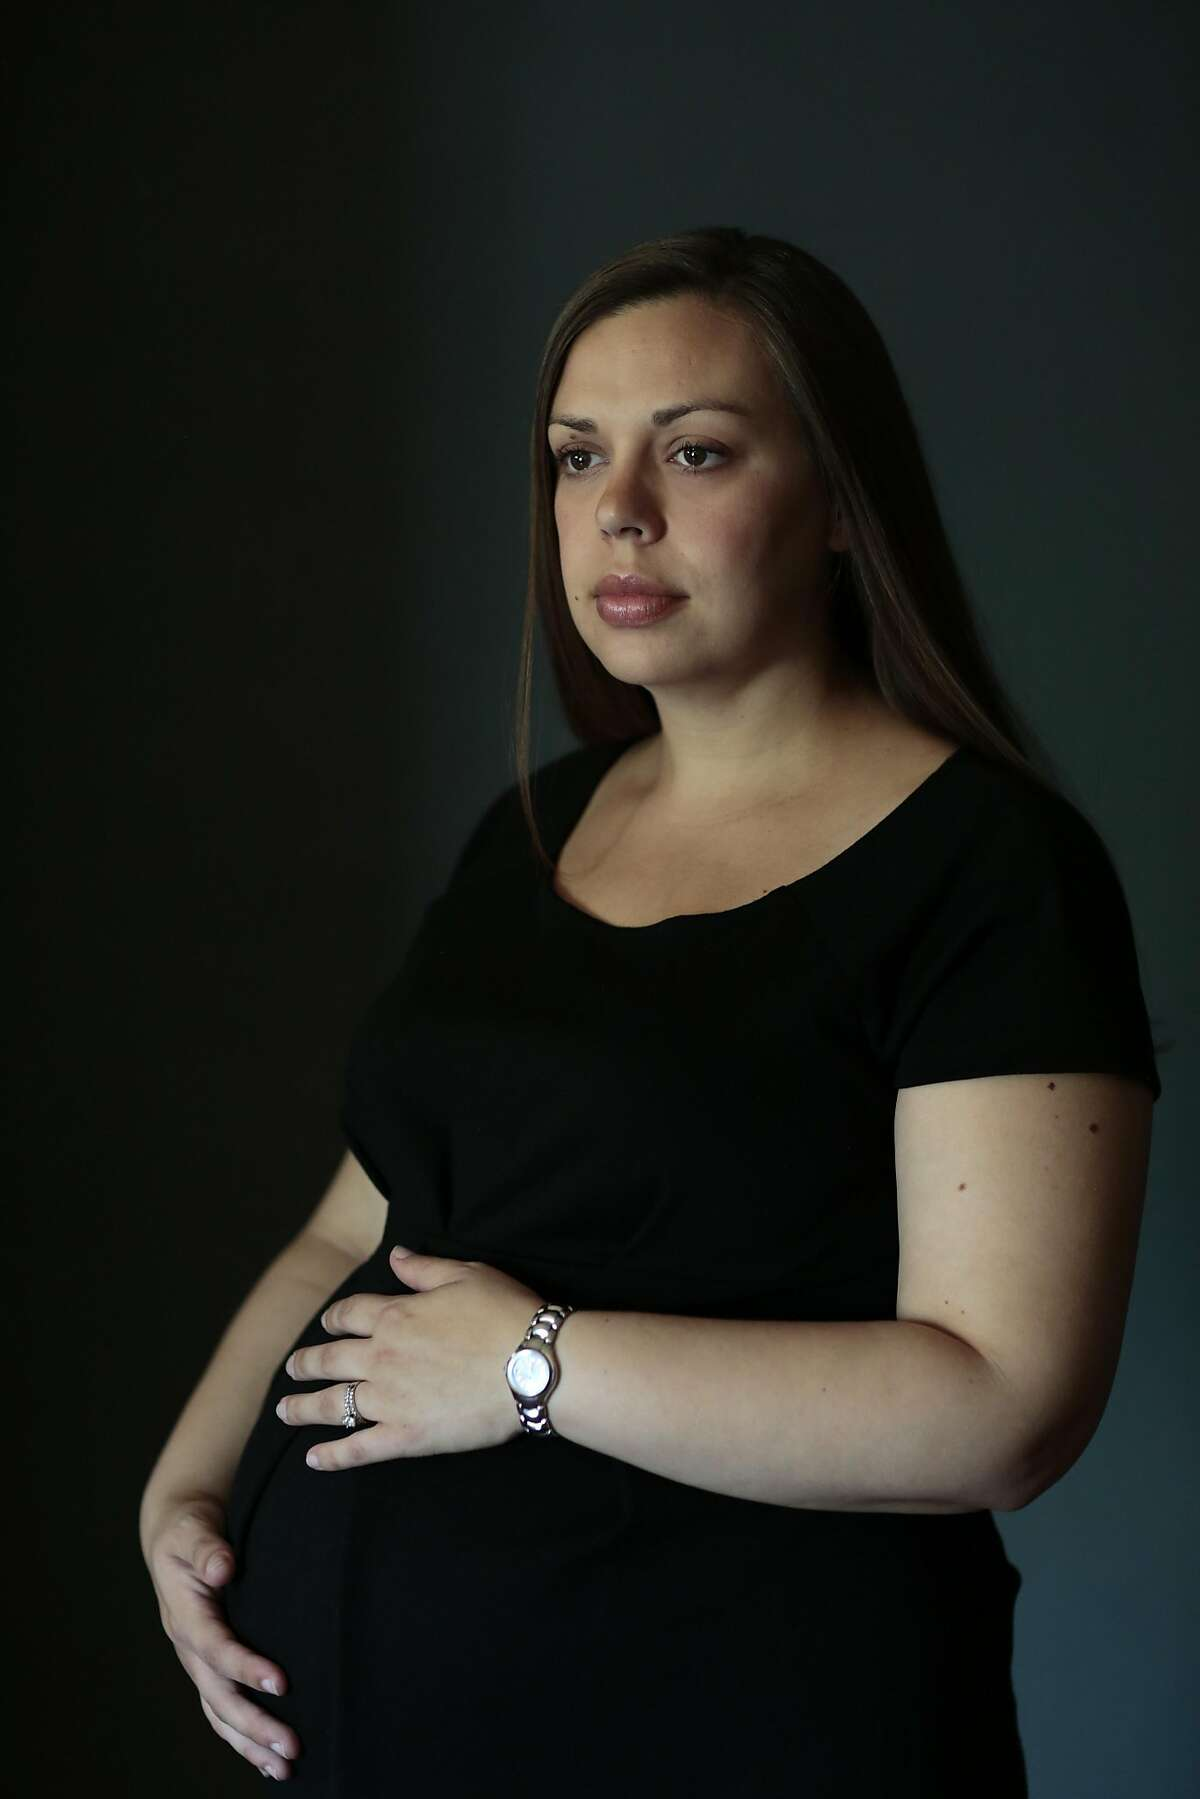 Rachel Miller poses for a portrait at her home in Redding, California, Saturday, August 22, 2015. Mrs. Miller, a Redding lawyer and pregnant mother, is due to give birth by C-section on Sept. 29 and wants to have her doctor perform a tubal ligation that the hospital, Mercy Medical Center in Redding, refuses to allow because of Catholic doctrine. Her ACLU lawyer says she'll sue if the hospital doesn't change its mind. Ramin Rahimian/Special to The Chronicle